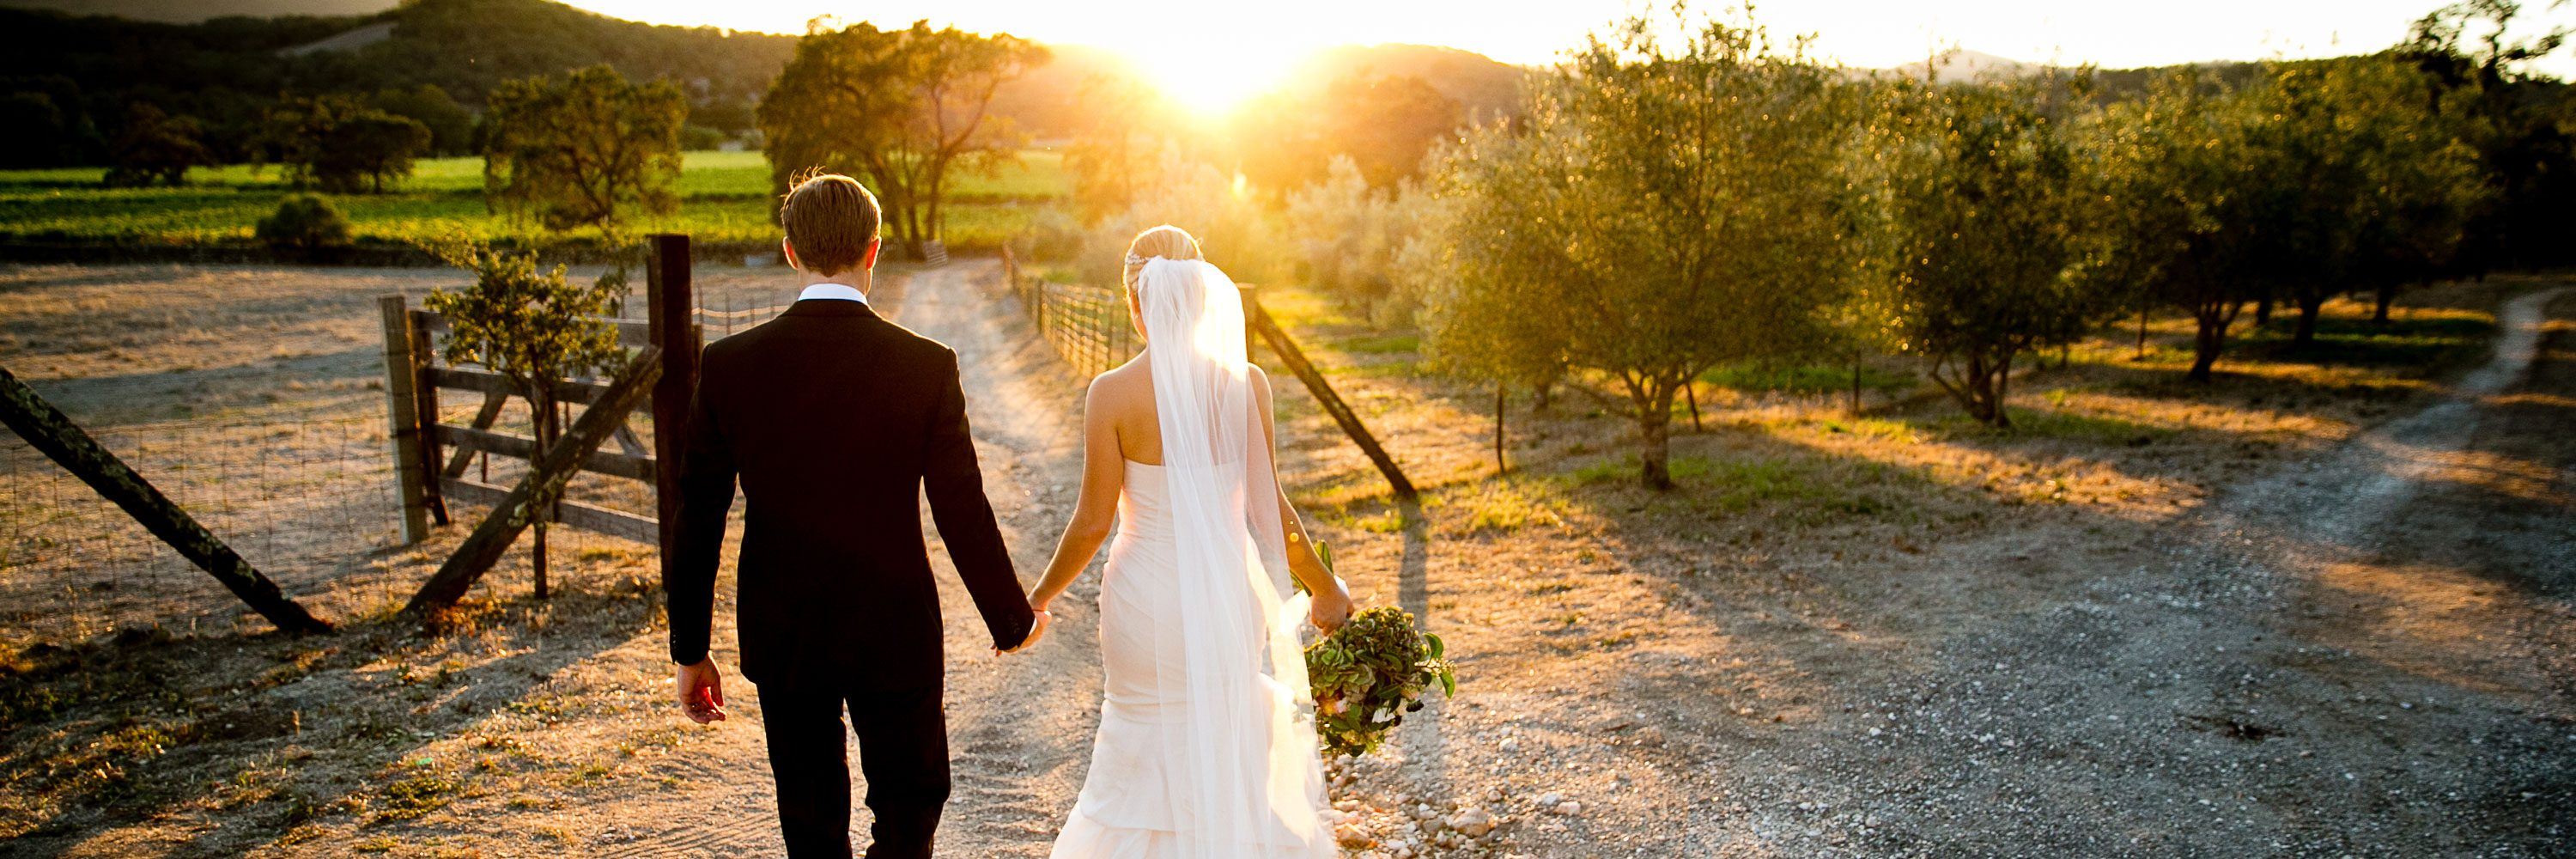 Sonoma Valley Wedding Venue